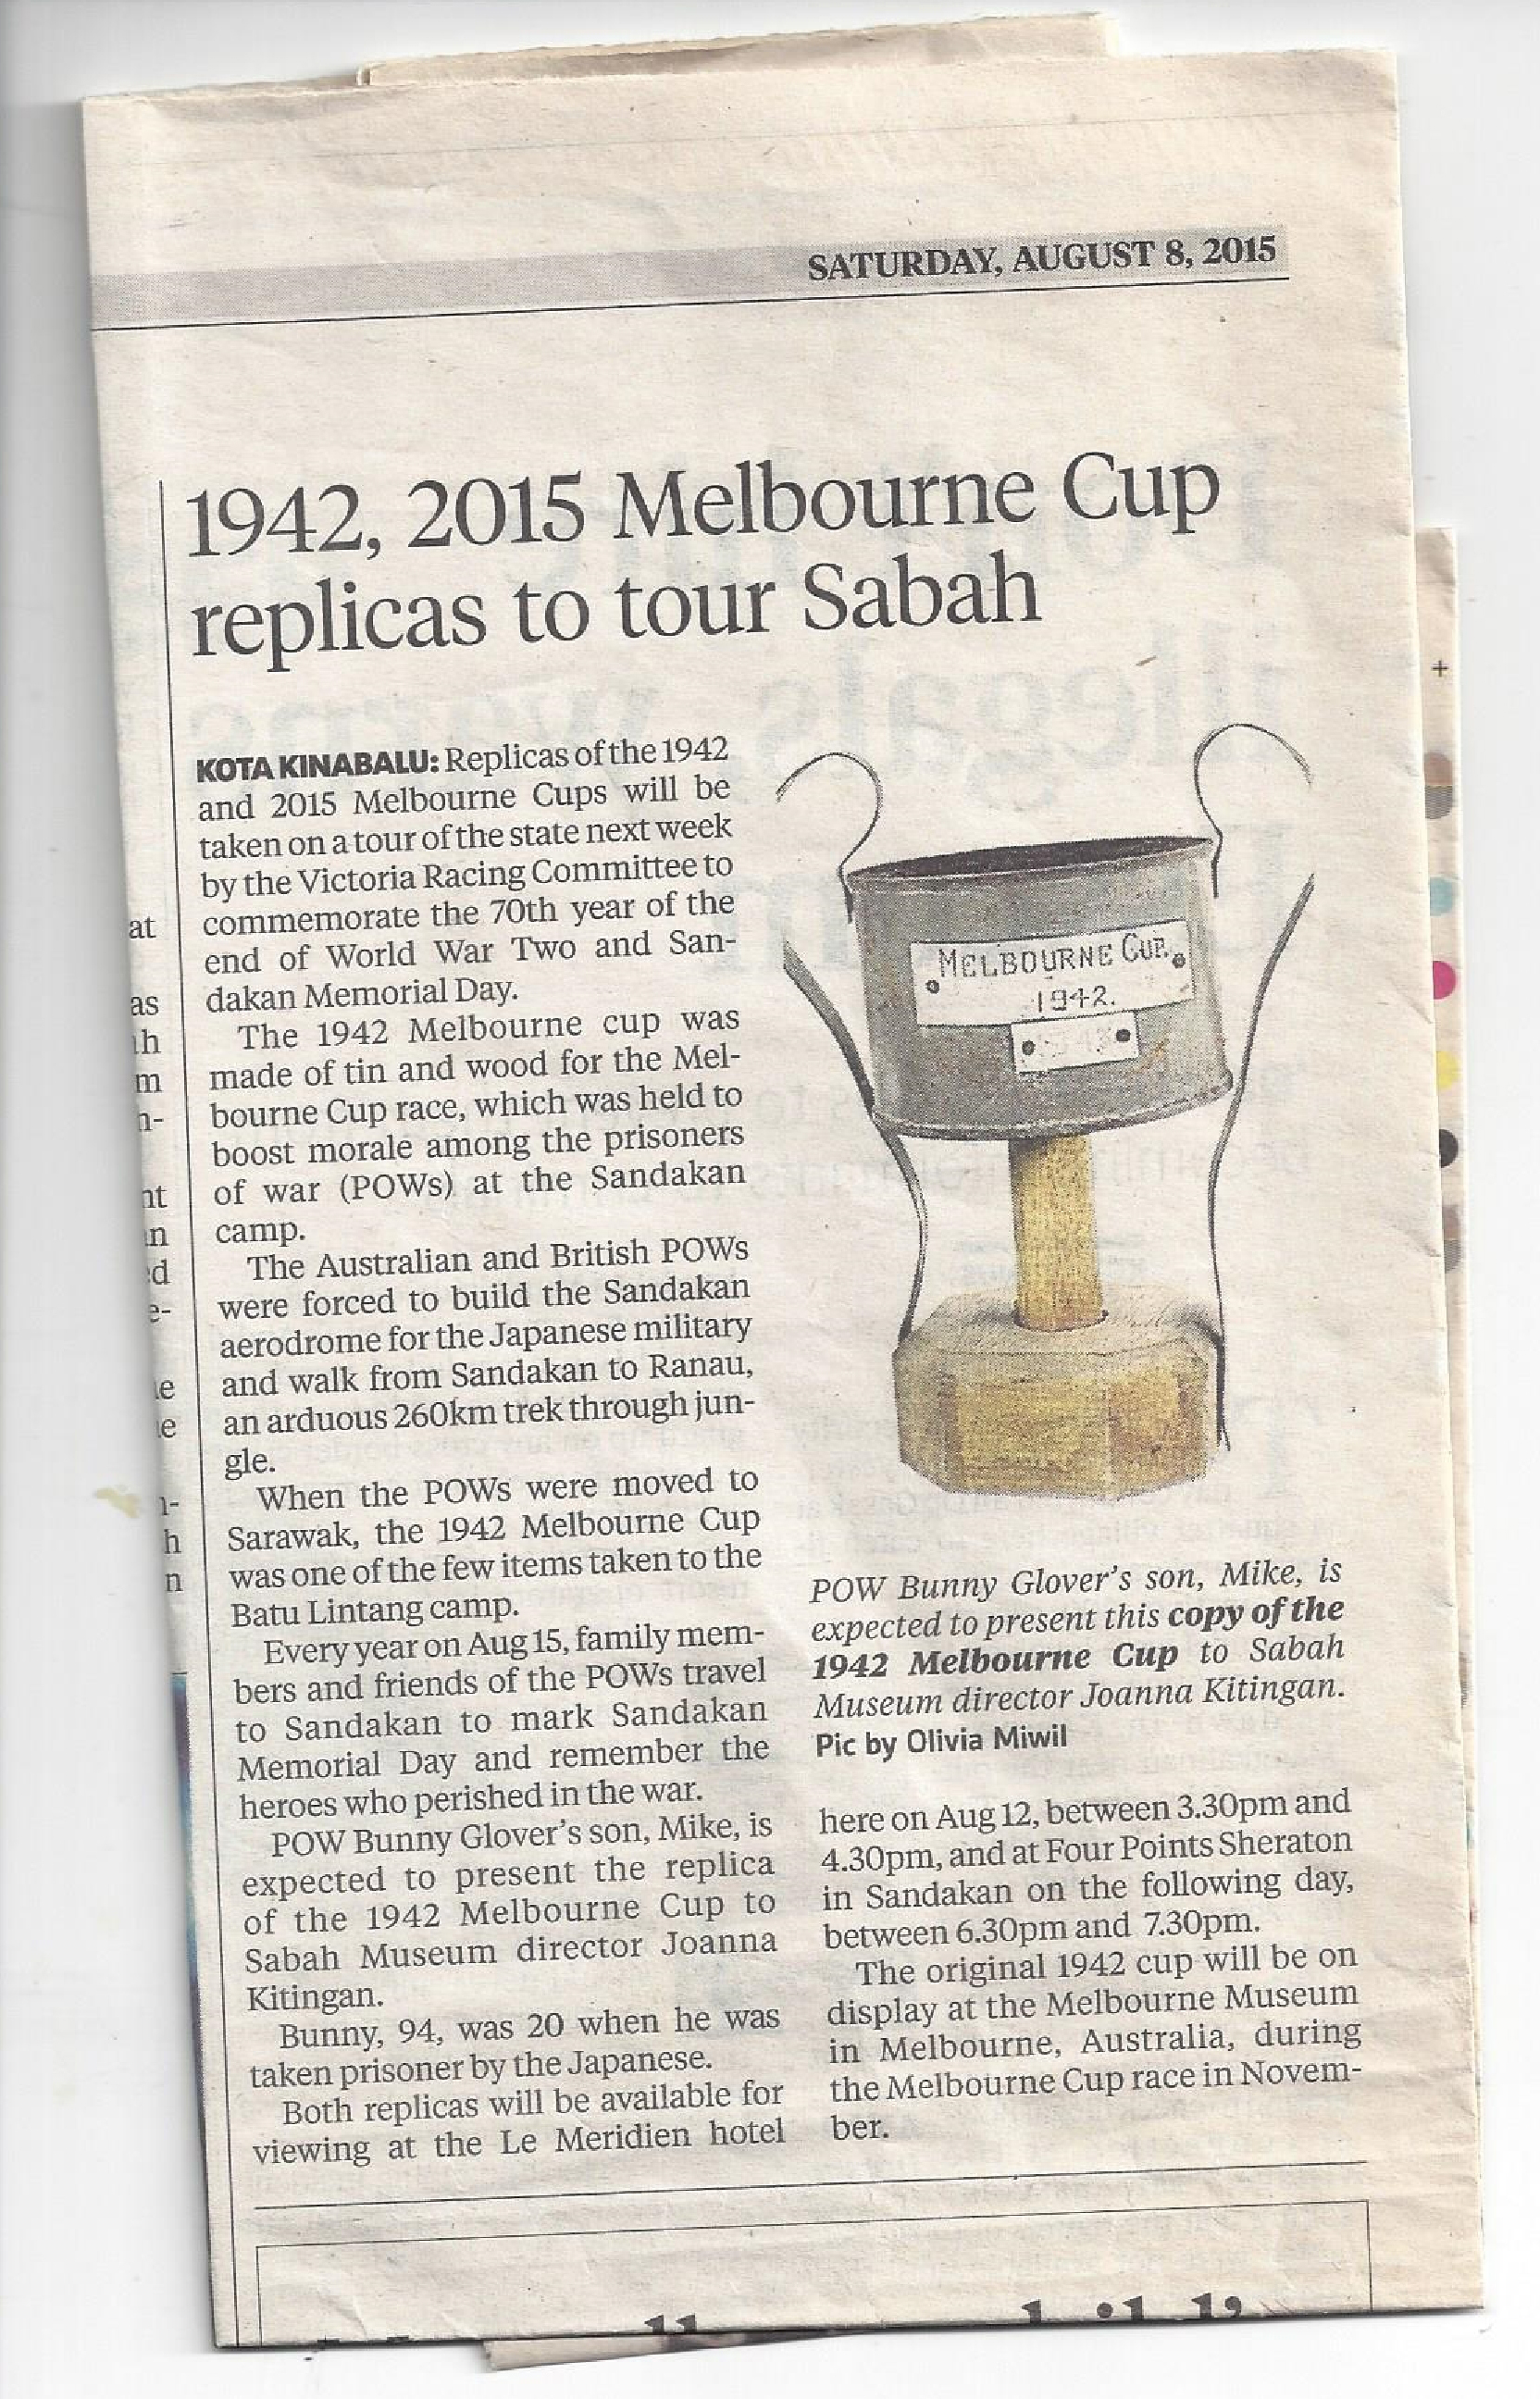 The 1942 Melbourne Cup (Sandakan) Story